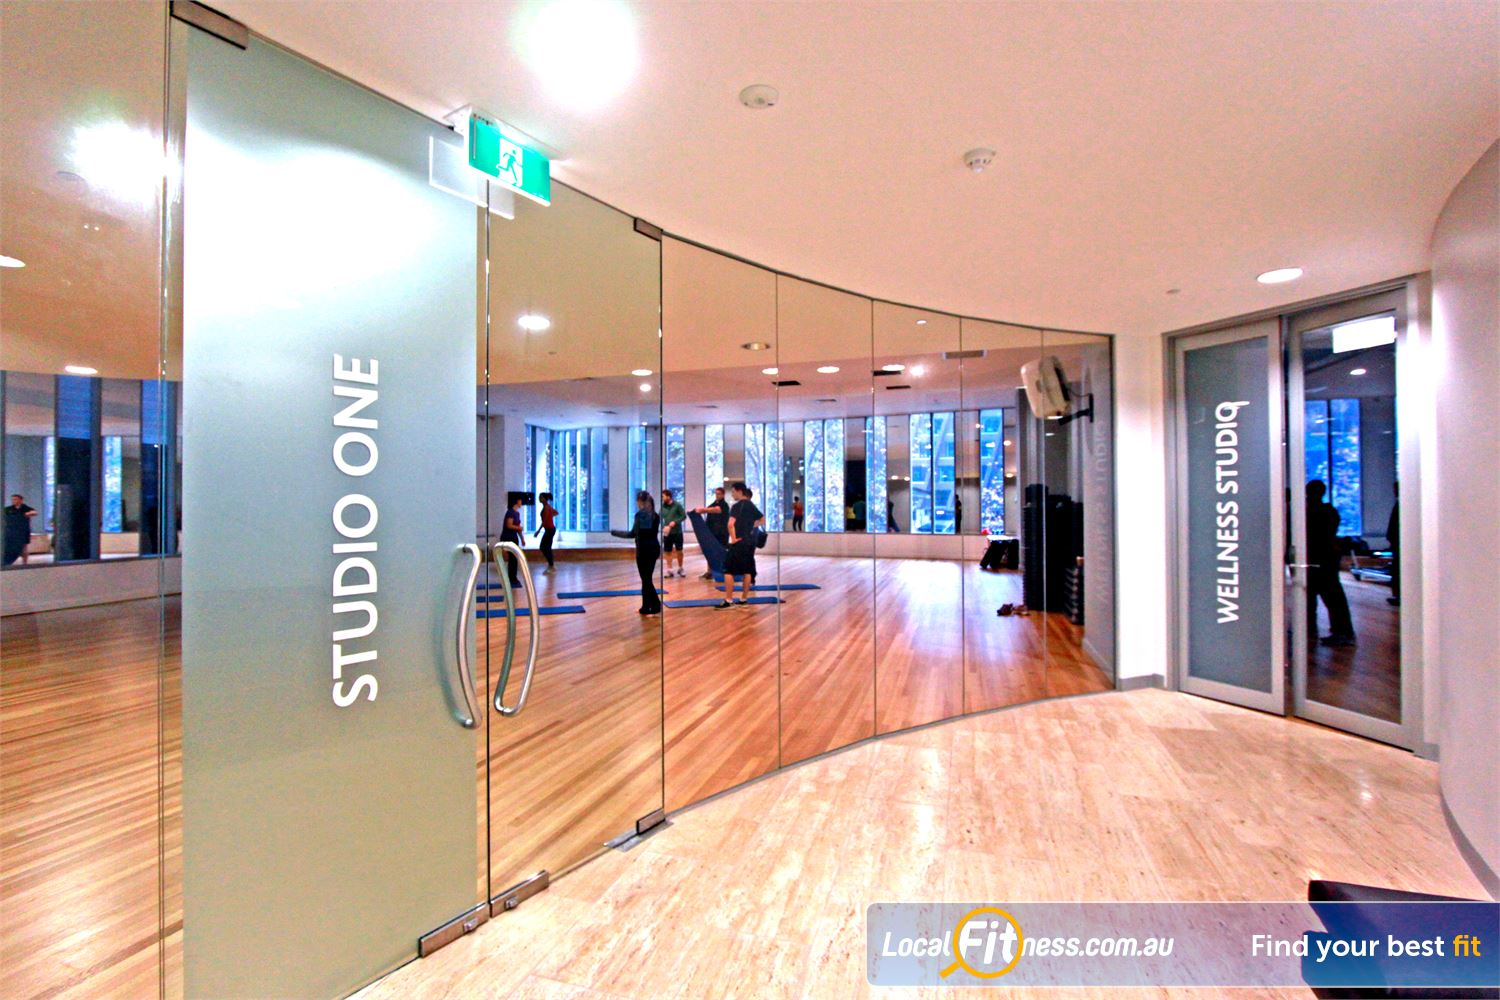 South Pacific Health Clubs Melbourne Dedicated studio with over 50 group classes per week.